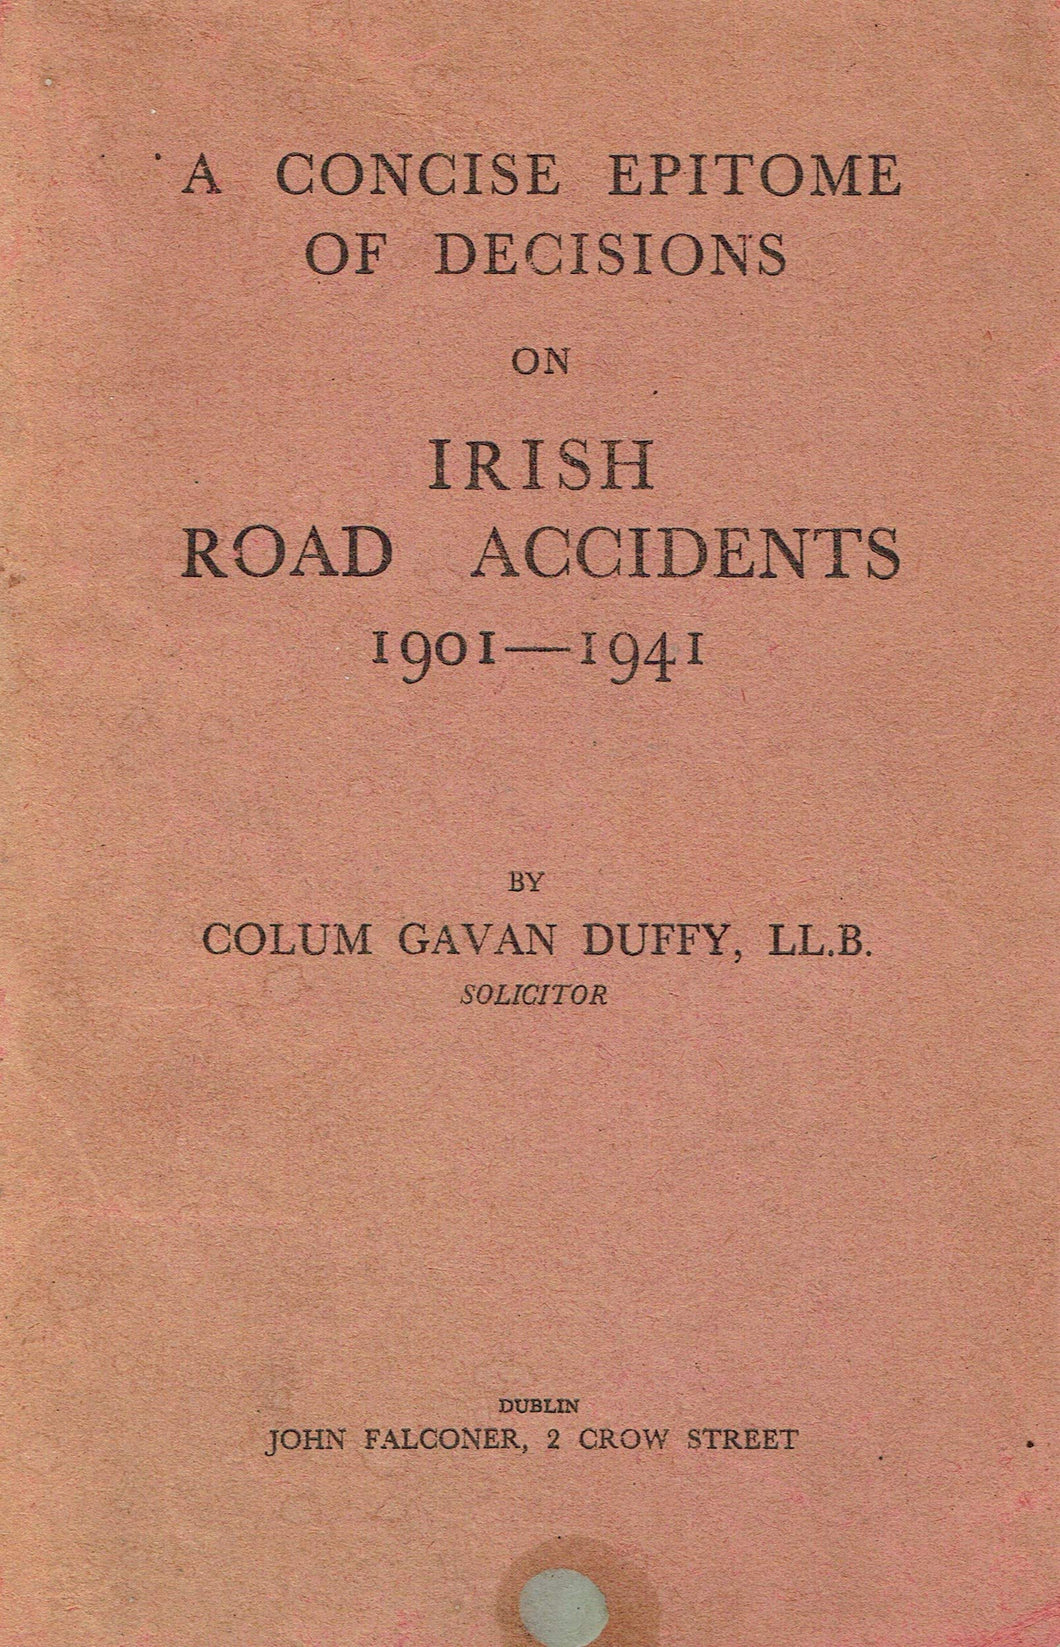 A chapter of accidents: Being a concise epitome of all the reported decisions on road accident cases in the Irish courts from 1901 to 1941 (both inclusive) together with a detailed analytical index